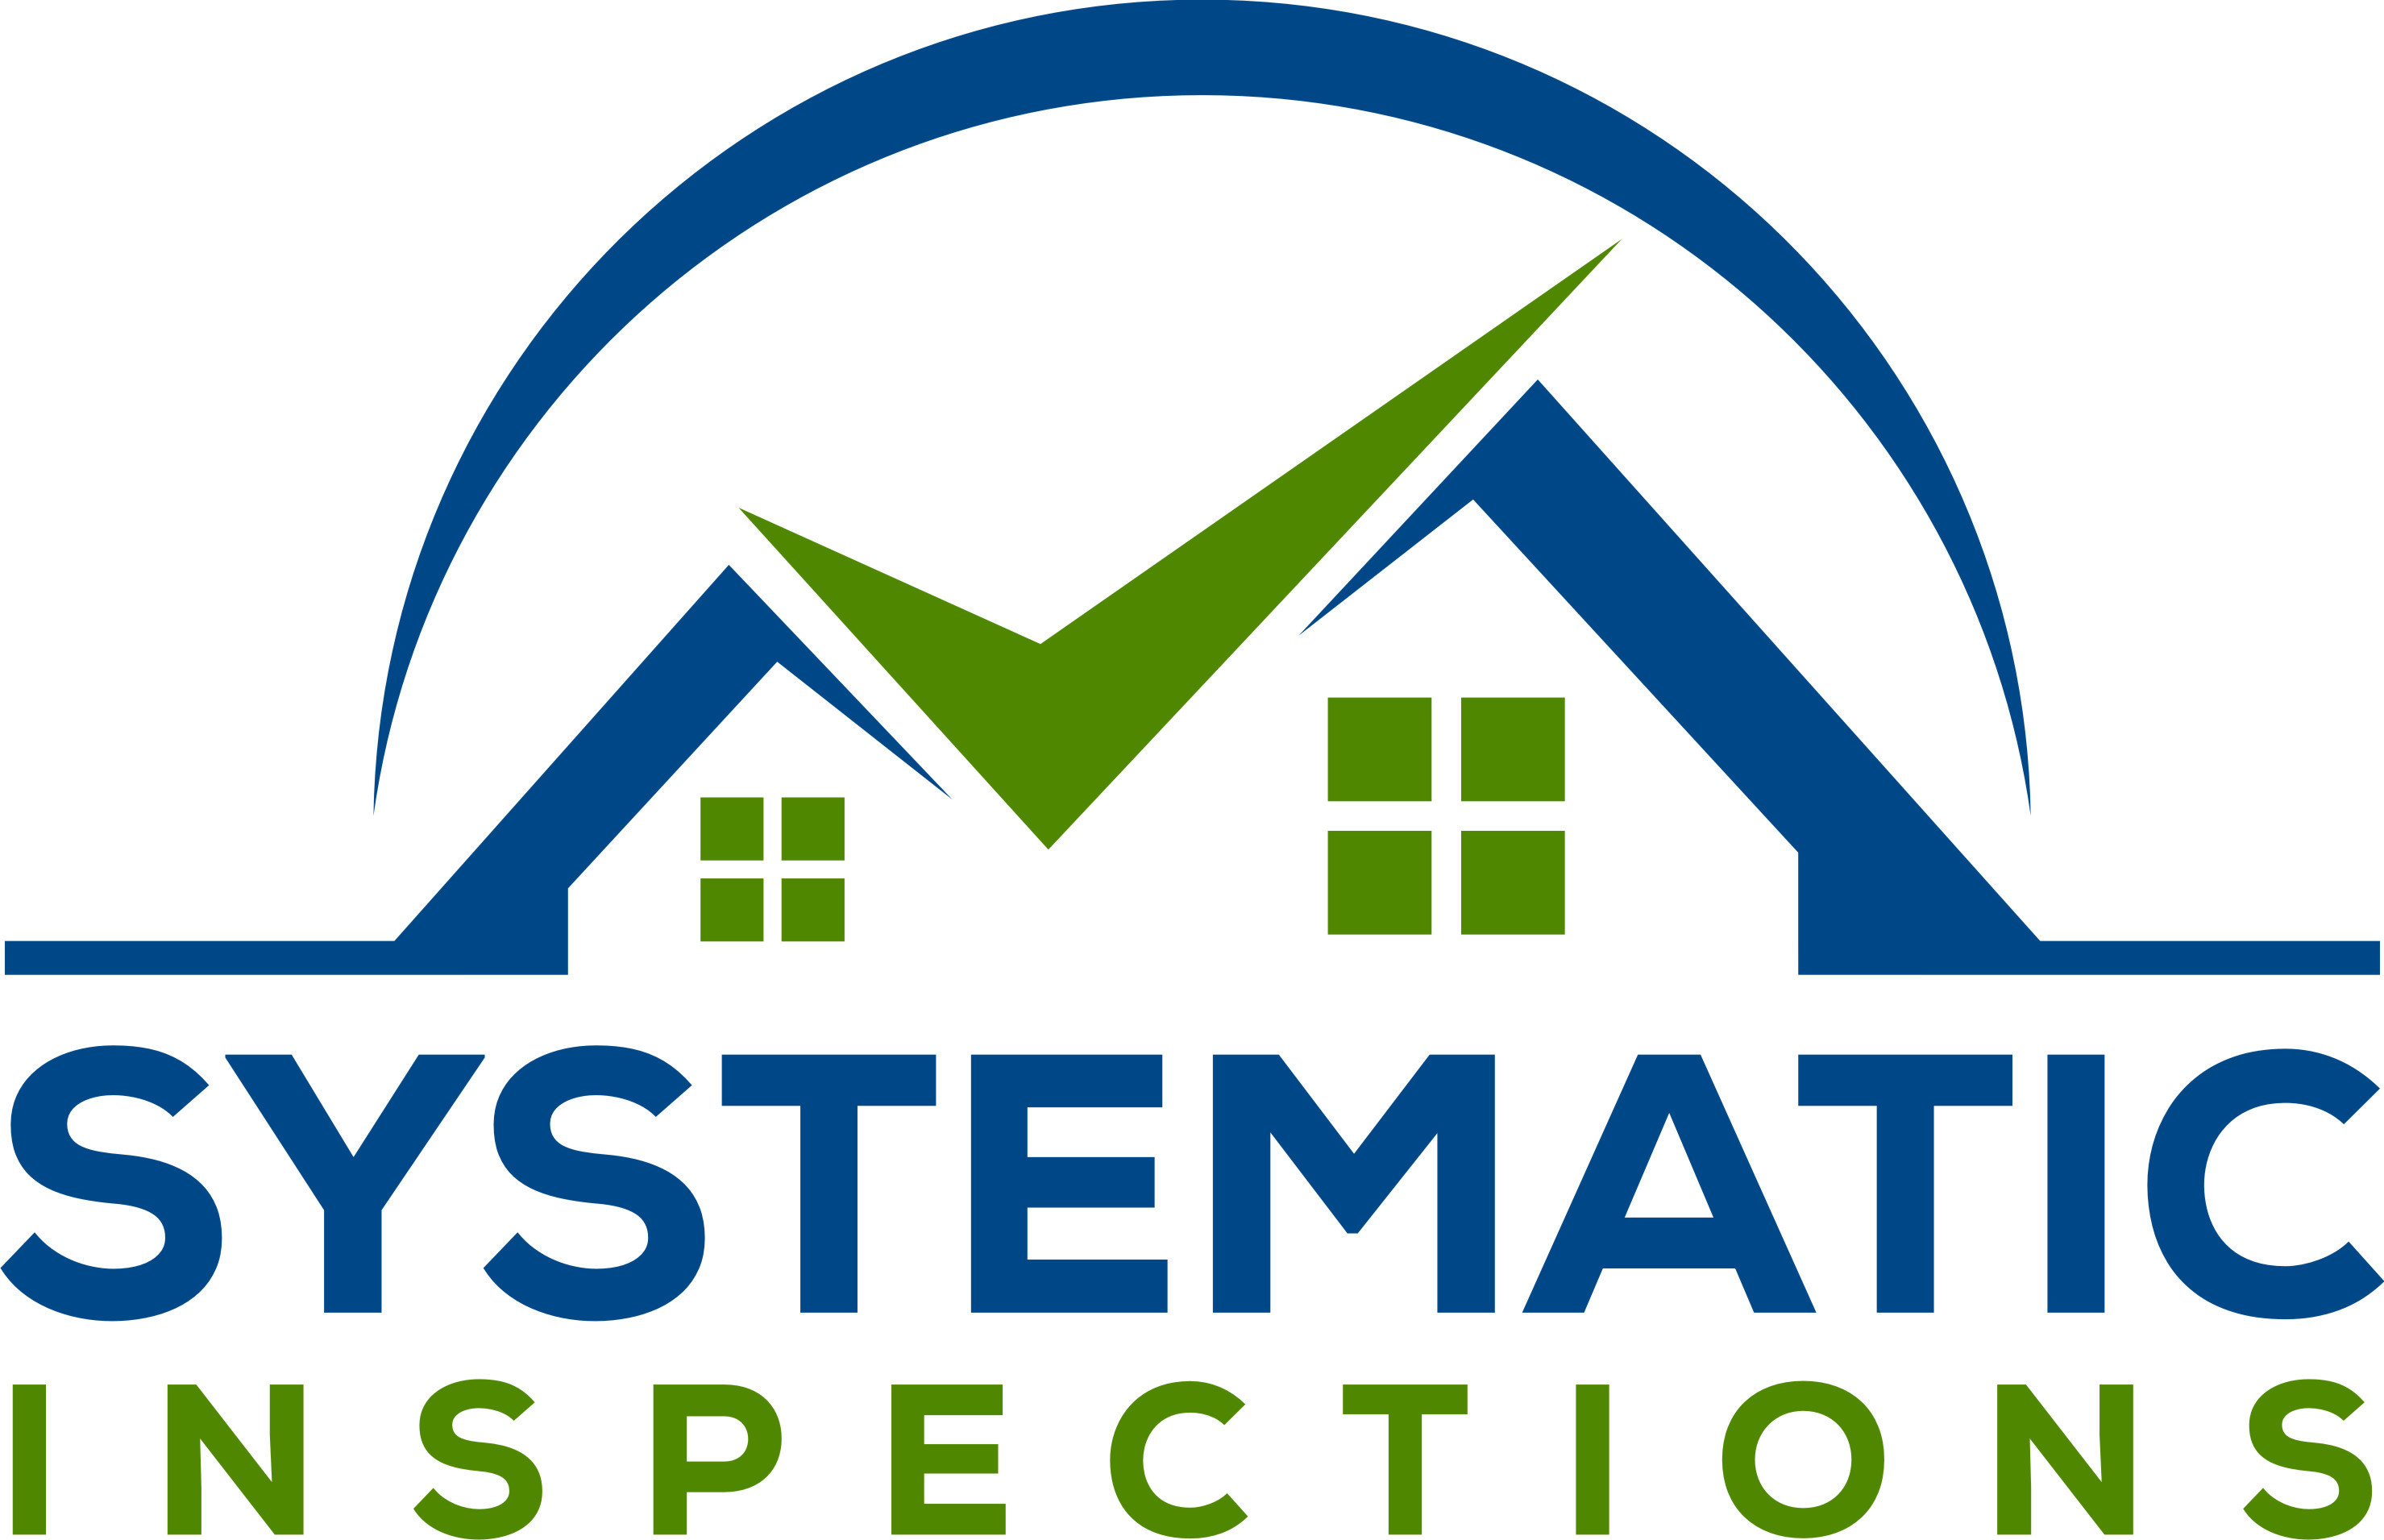 Systematic inspections 1